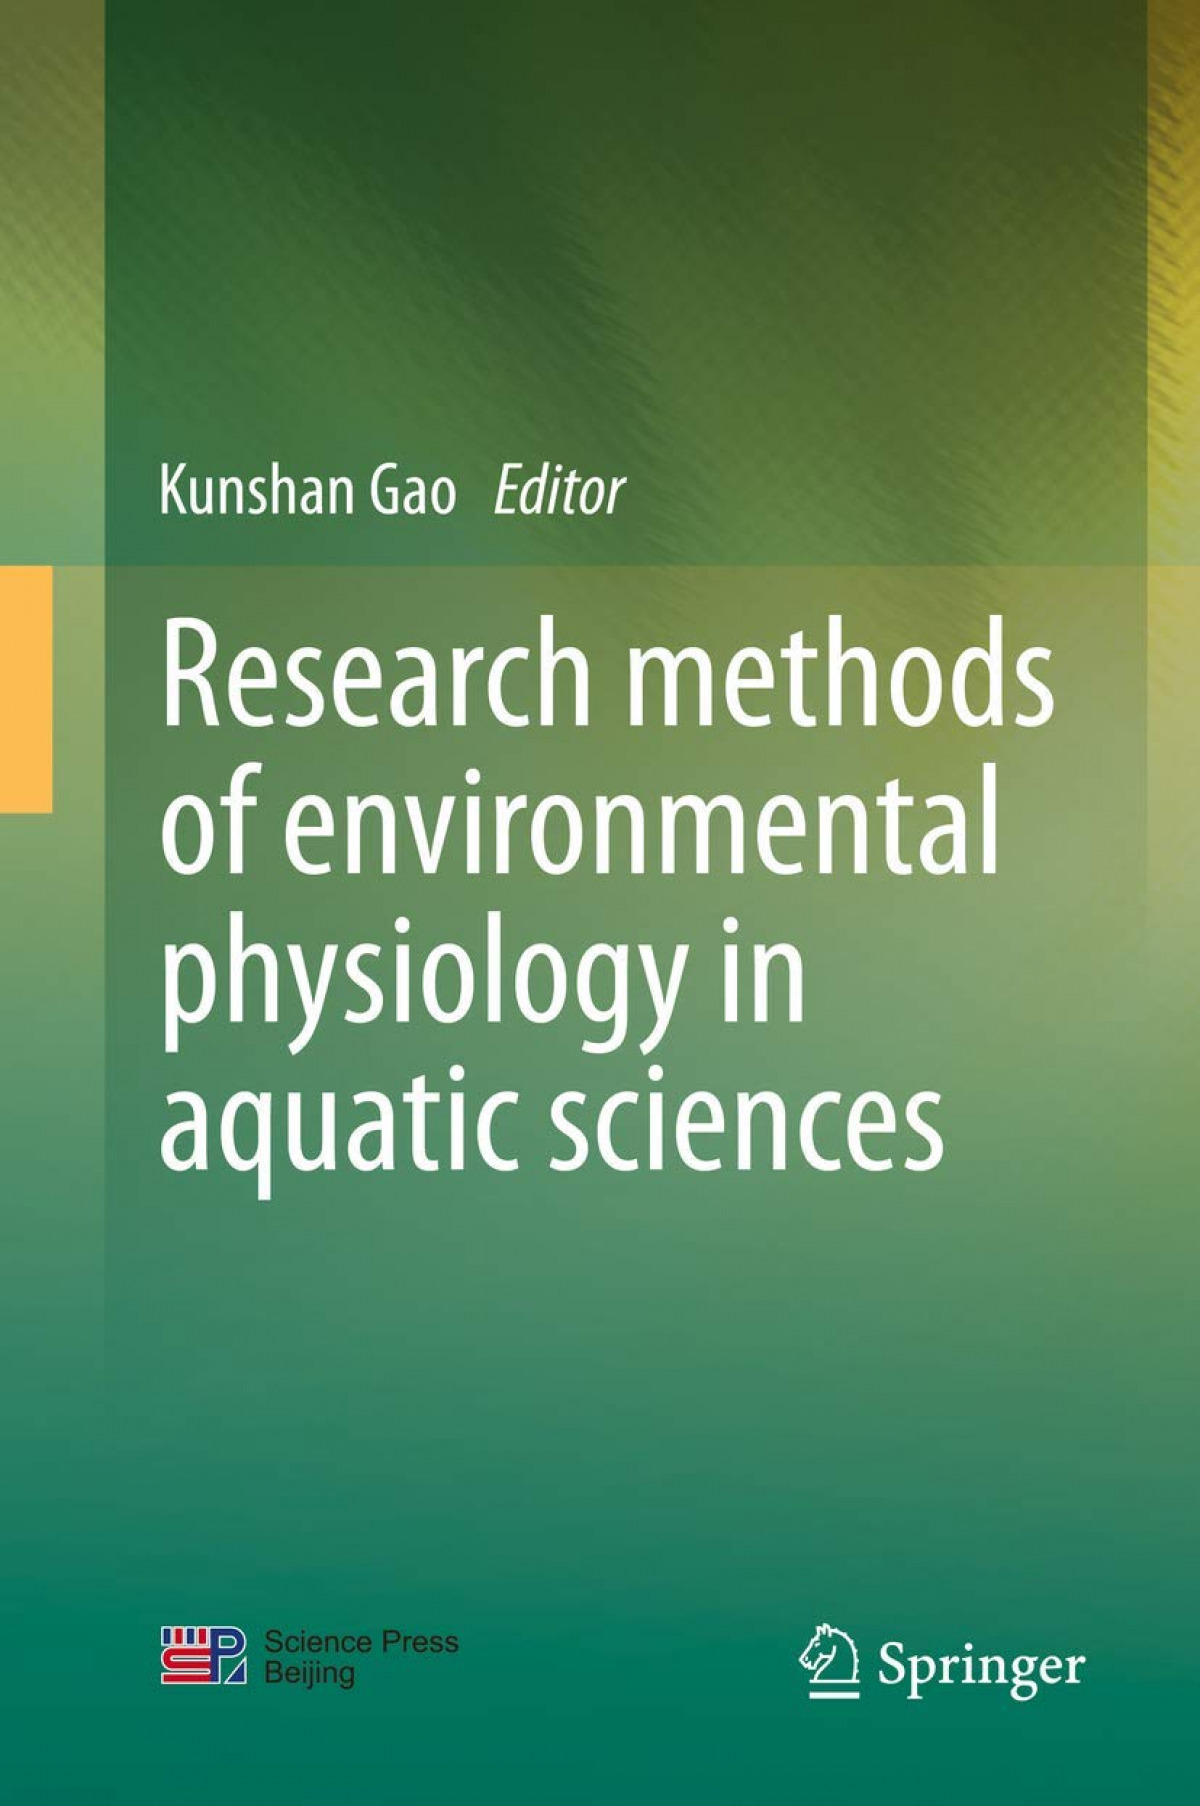 RESEARCH METHODS OF ENVIRONMENTAL PHYSIOLOGY IN AQUATIC